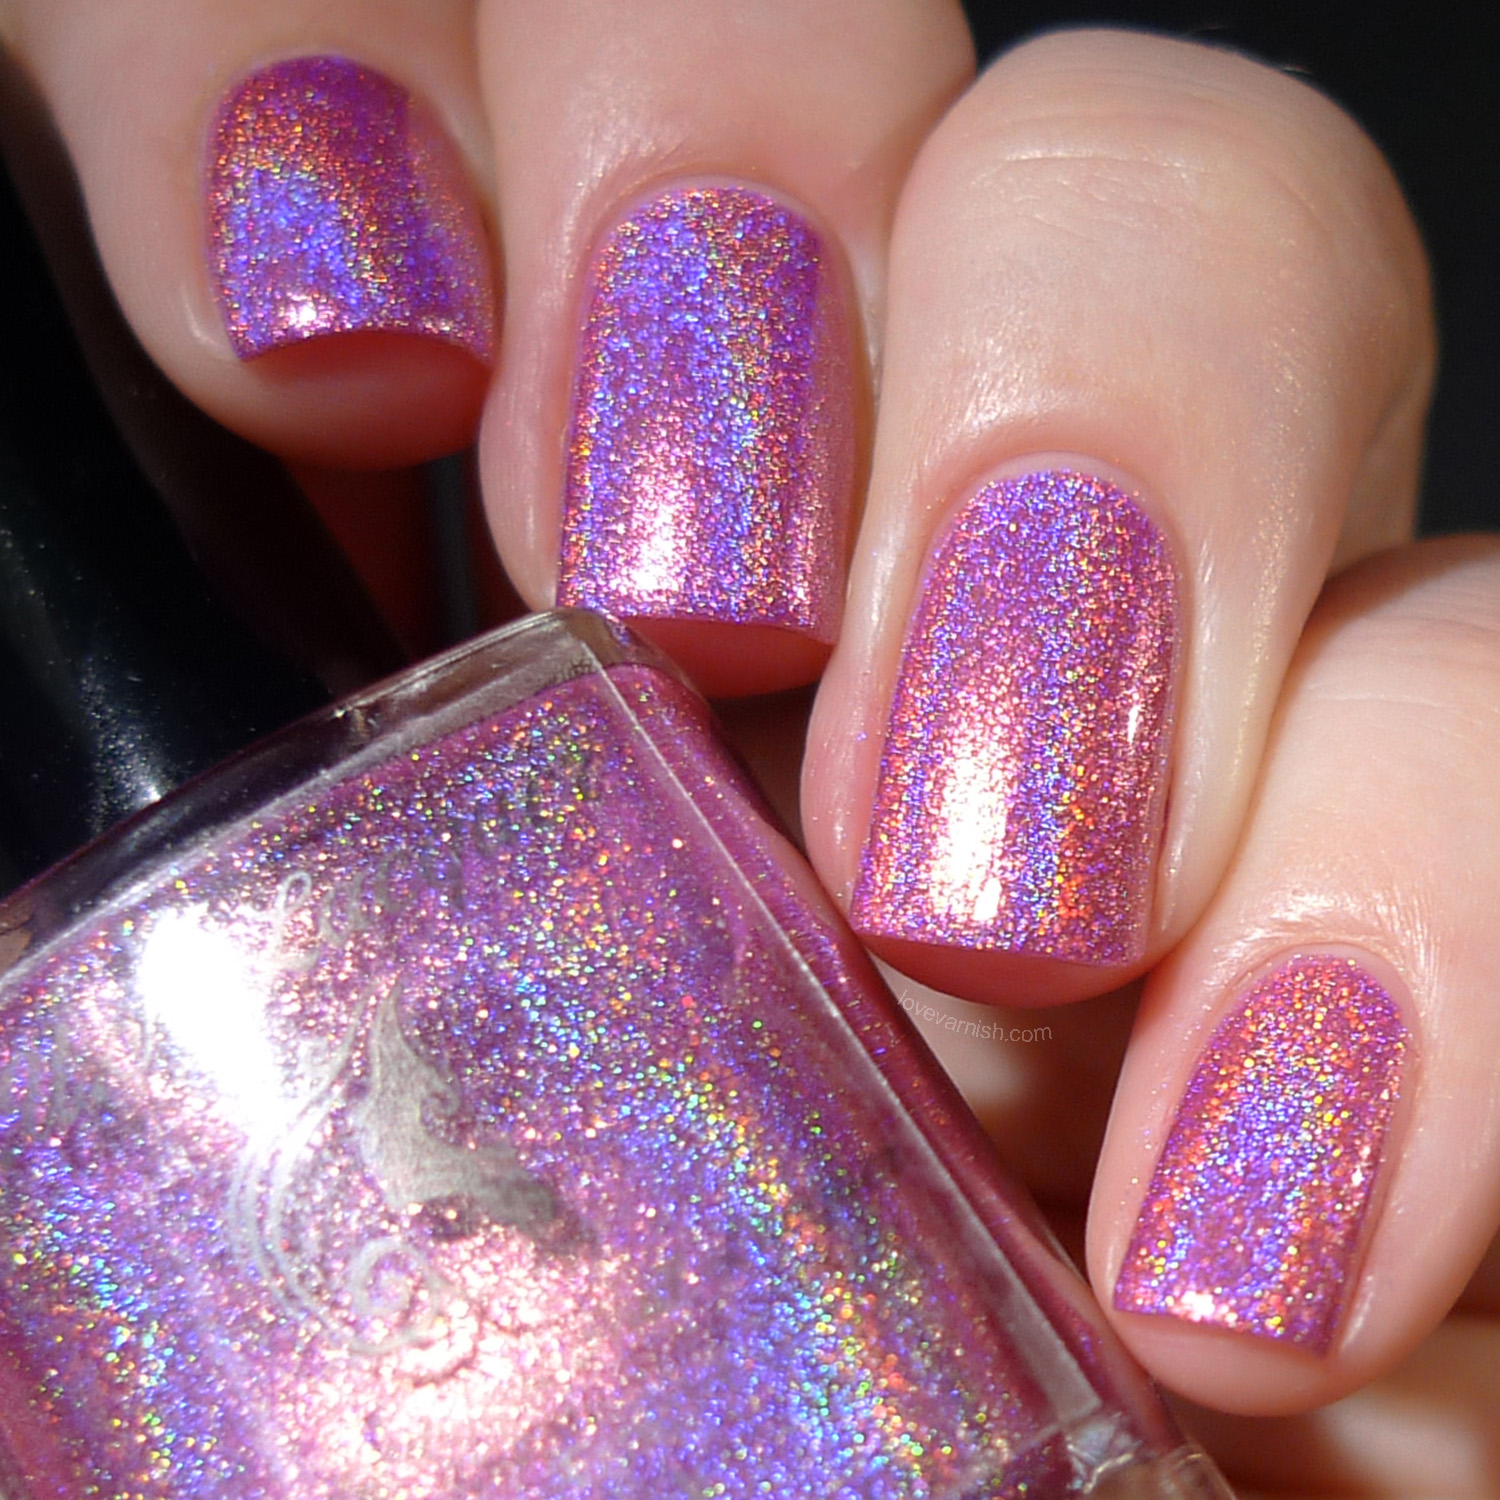 F.U.N Lacquer Summer 2014 Uniform For Summer: Bikini holographic